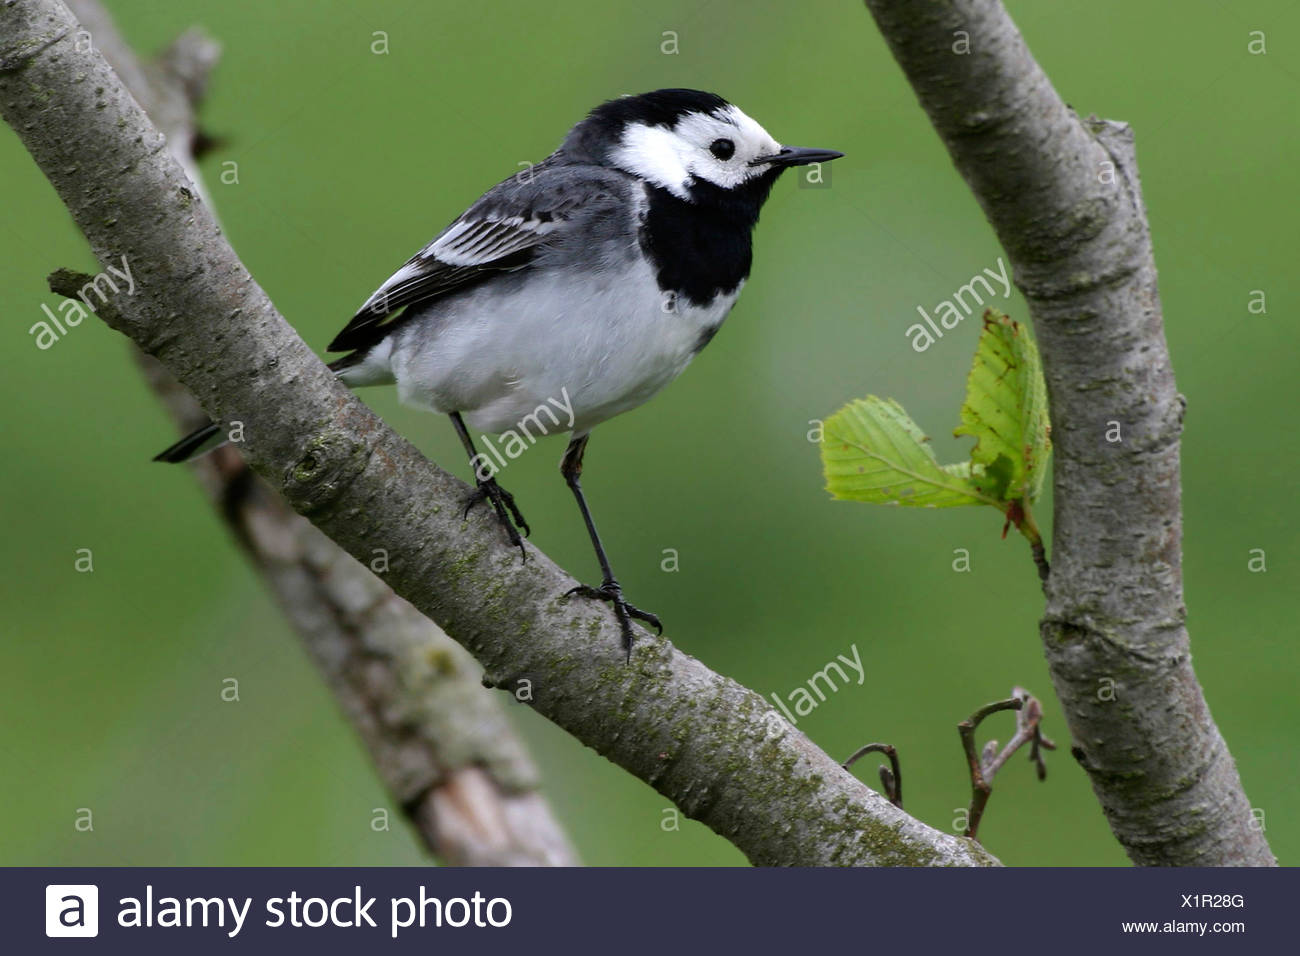 pied wagtail (Motacilla alba), sitting on a branch, Germany - Stock Image